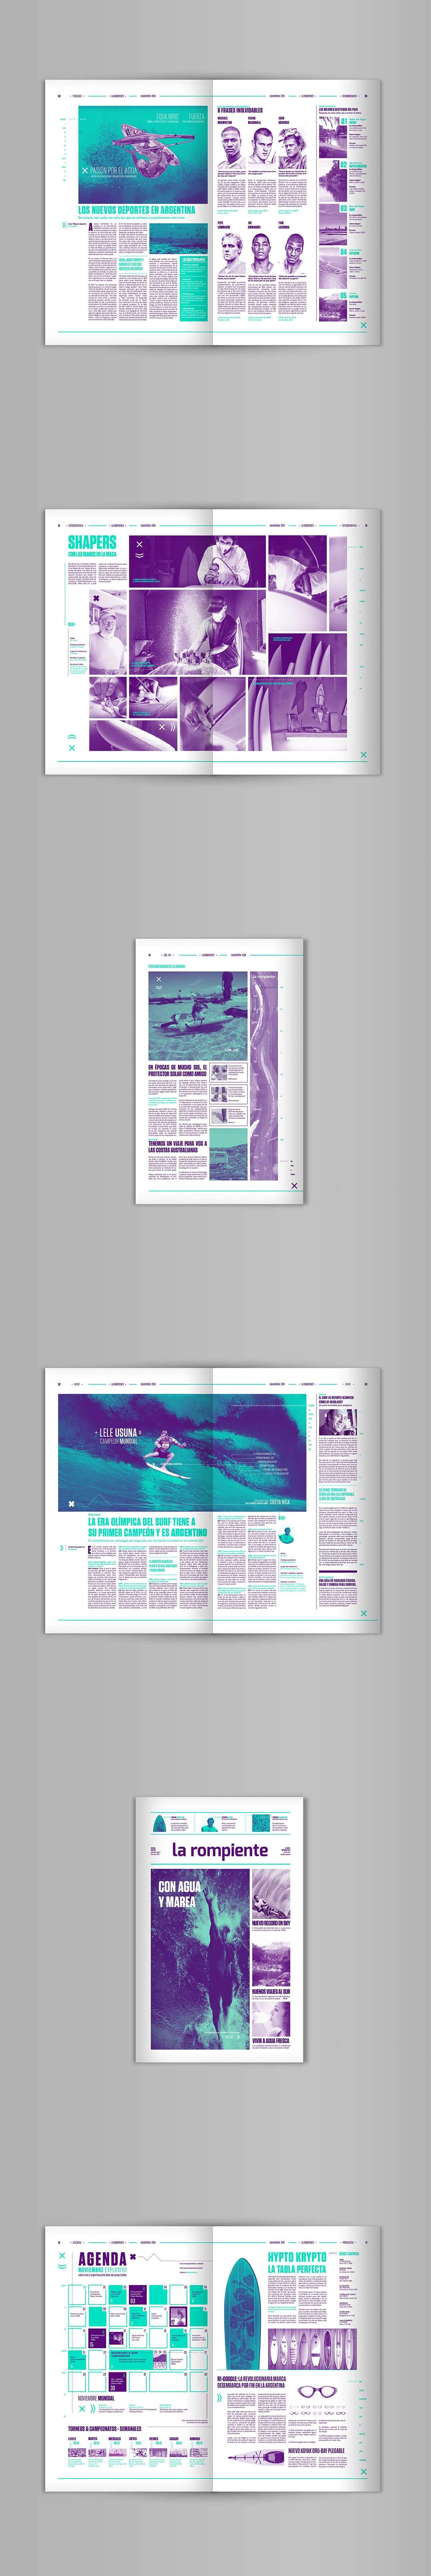 Free Weekly Newspaper Mockup